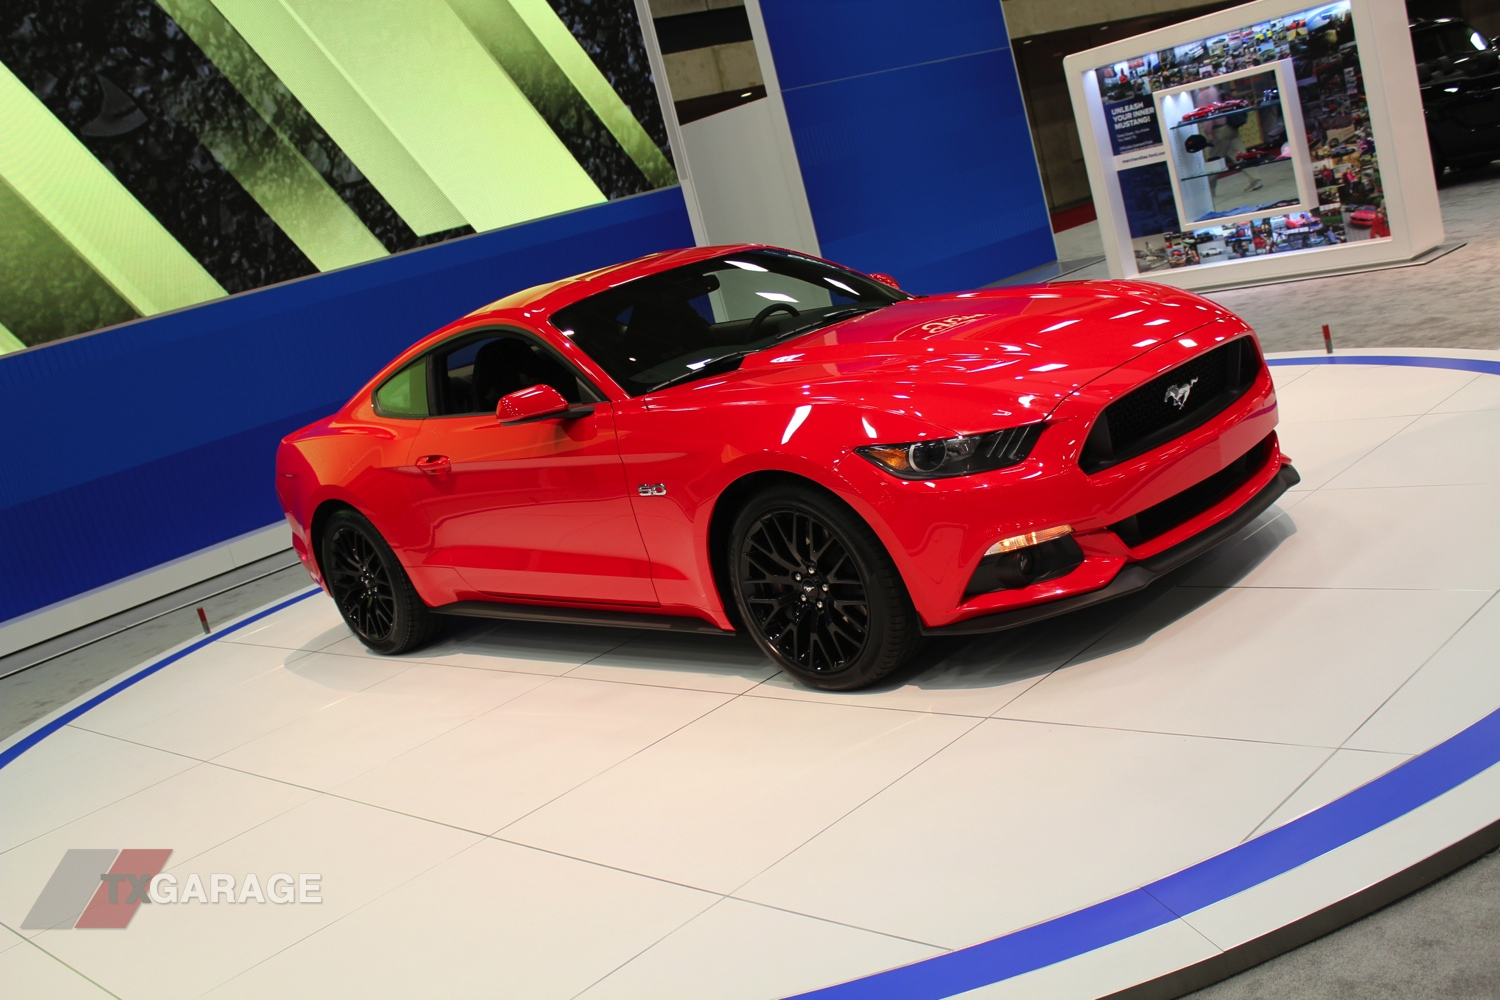 2015 Ford Mustang Gt 5 0 2014 Dallas Auto Show Txgarage